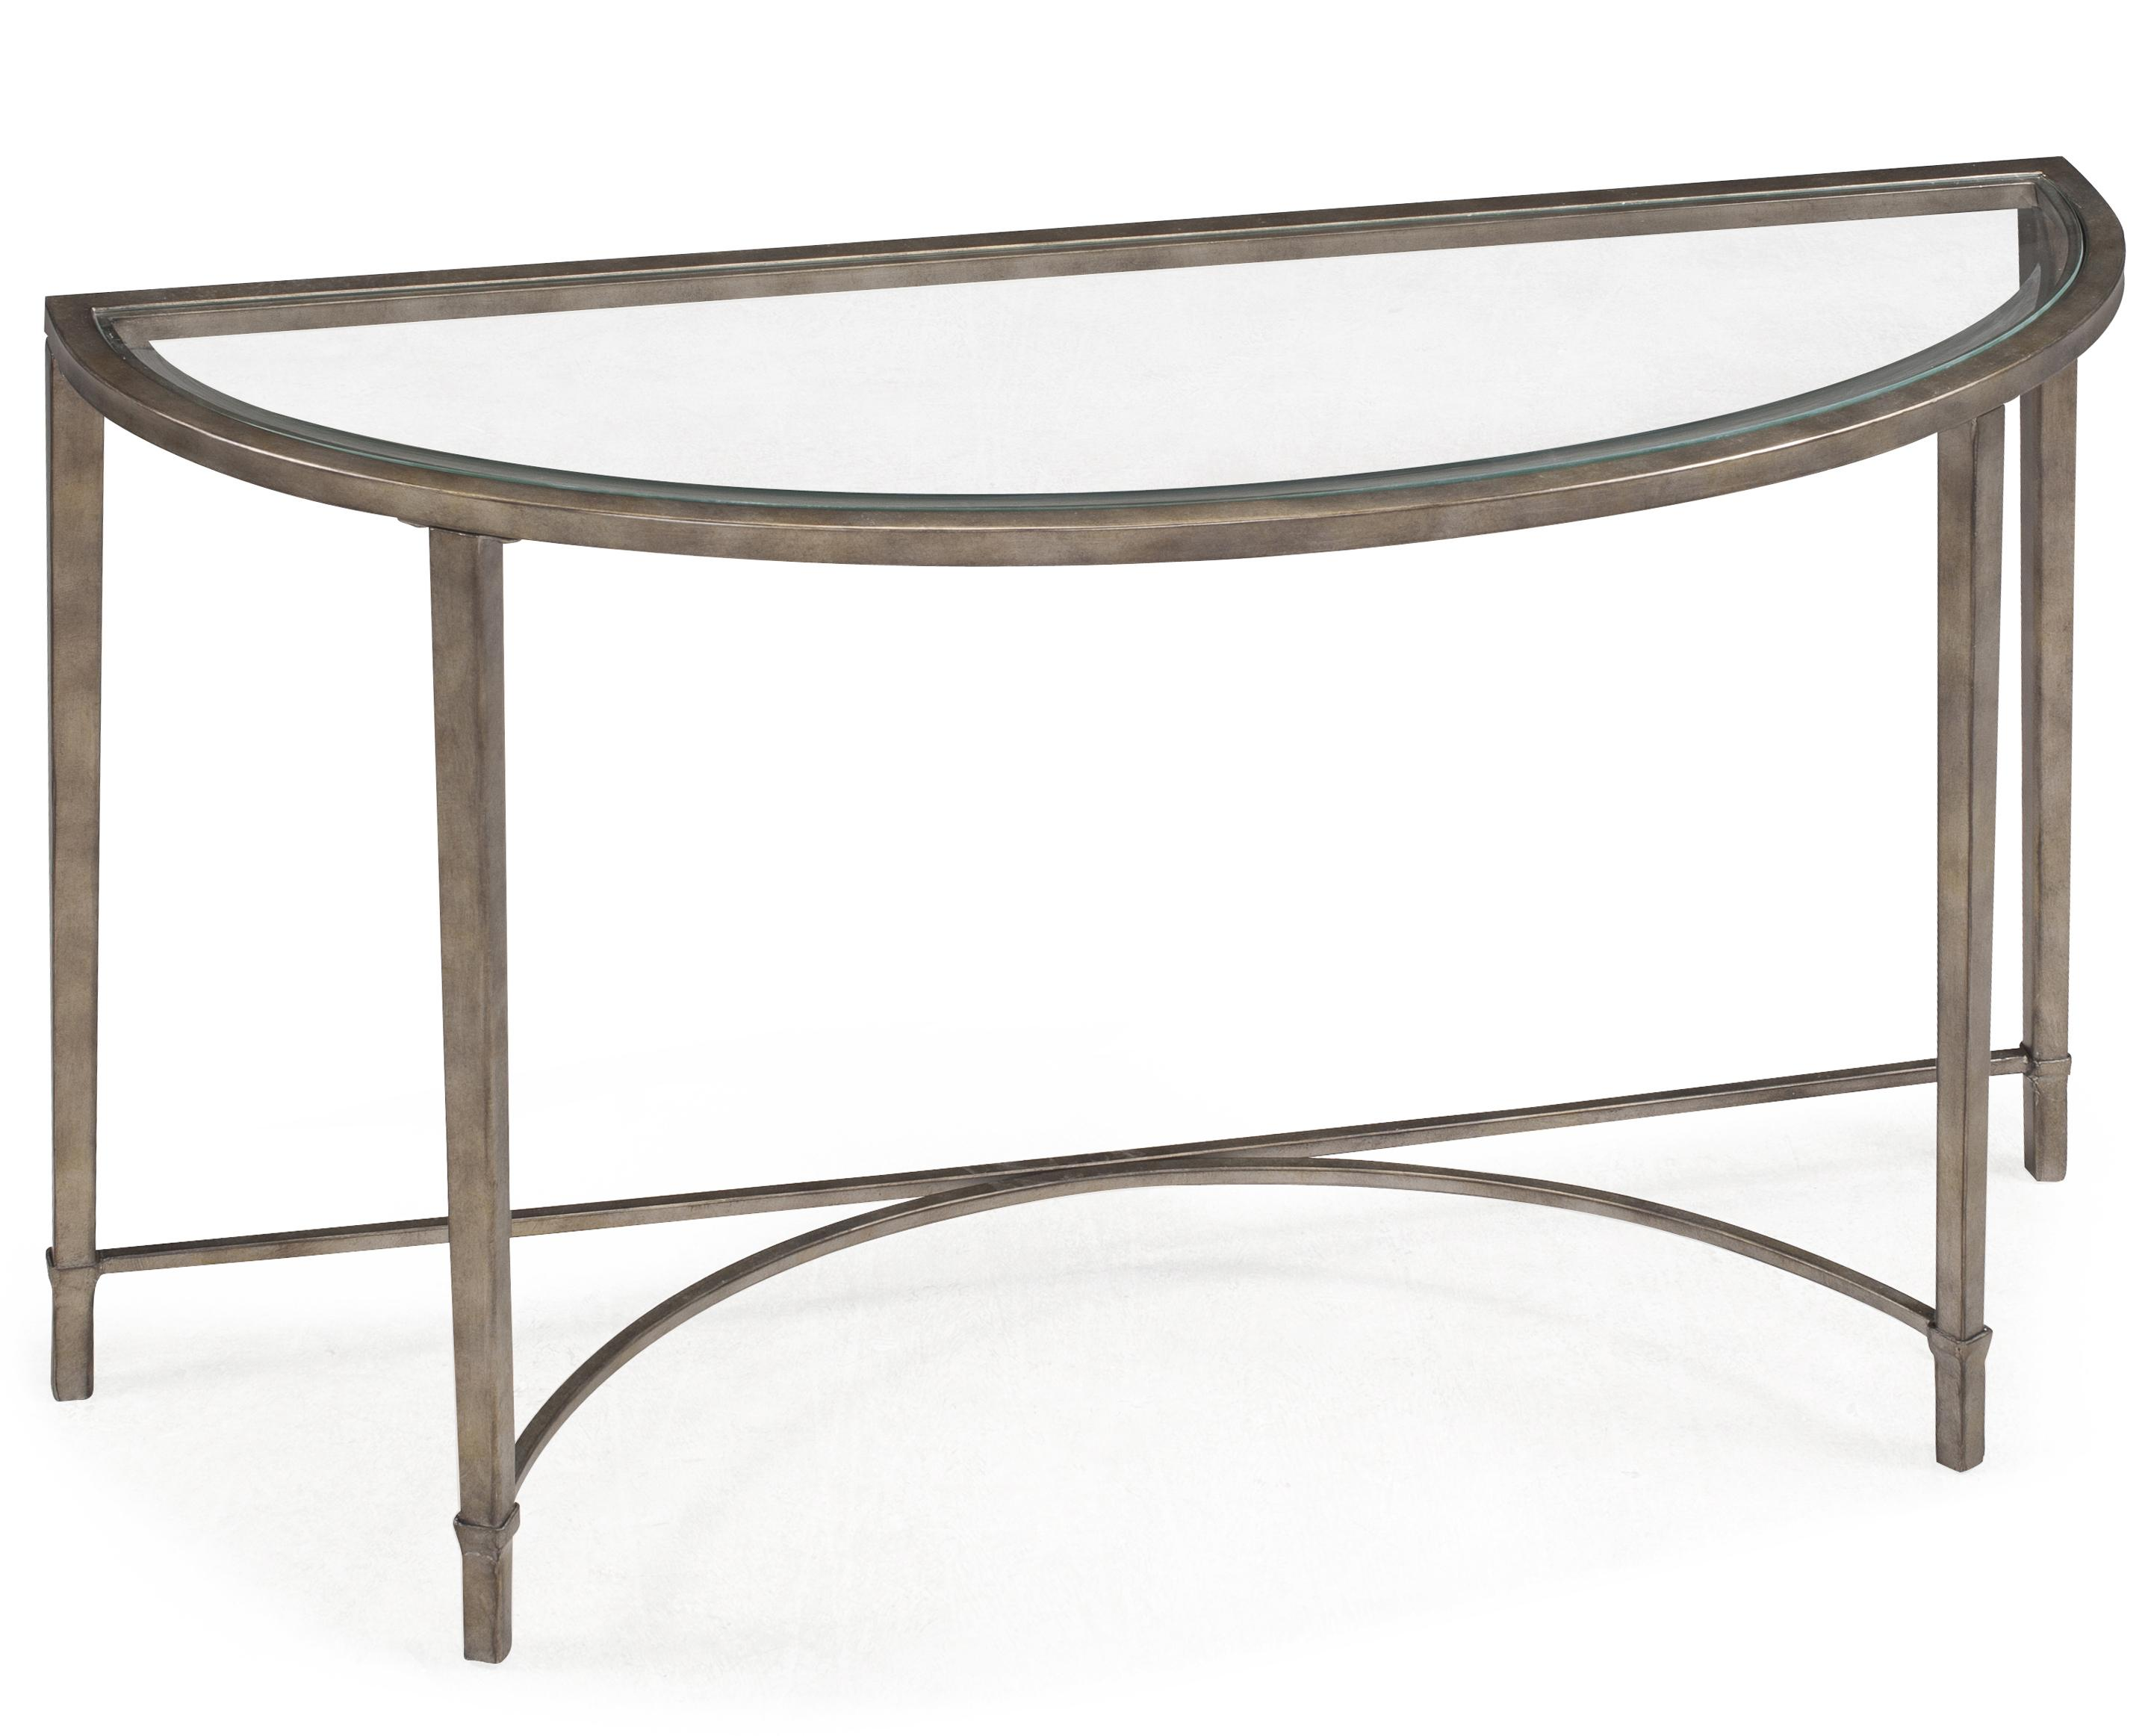 Magnussen Home Copia Demilune Sofa Table - Item Number: T2114-75